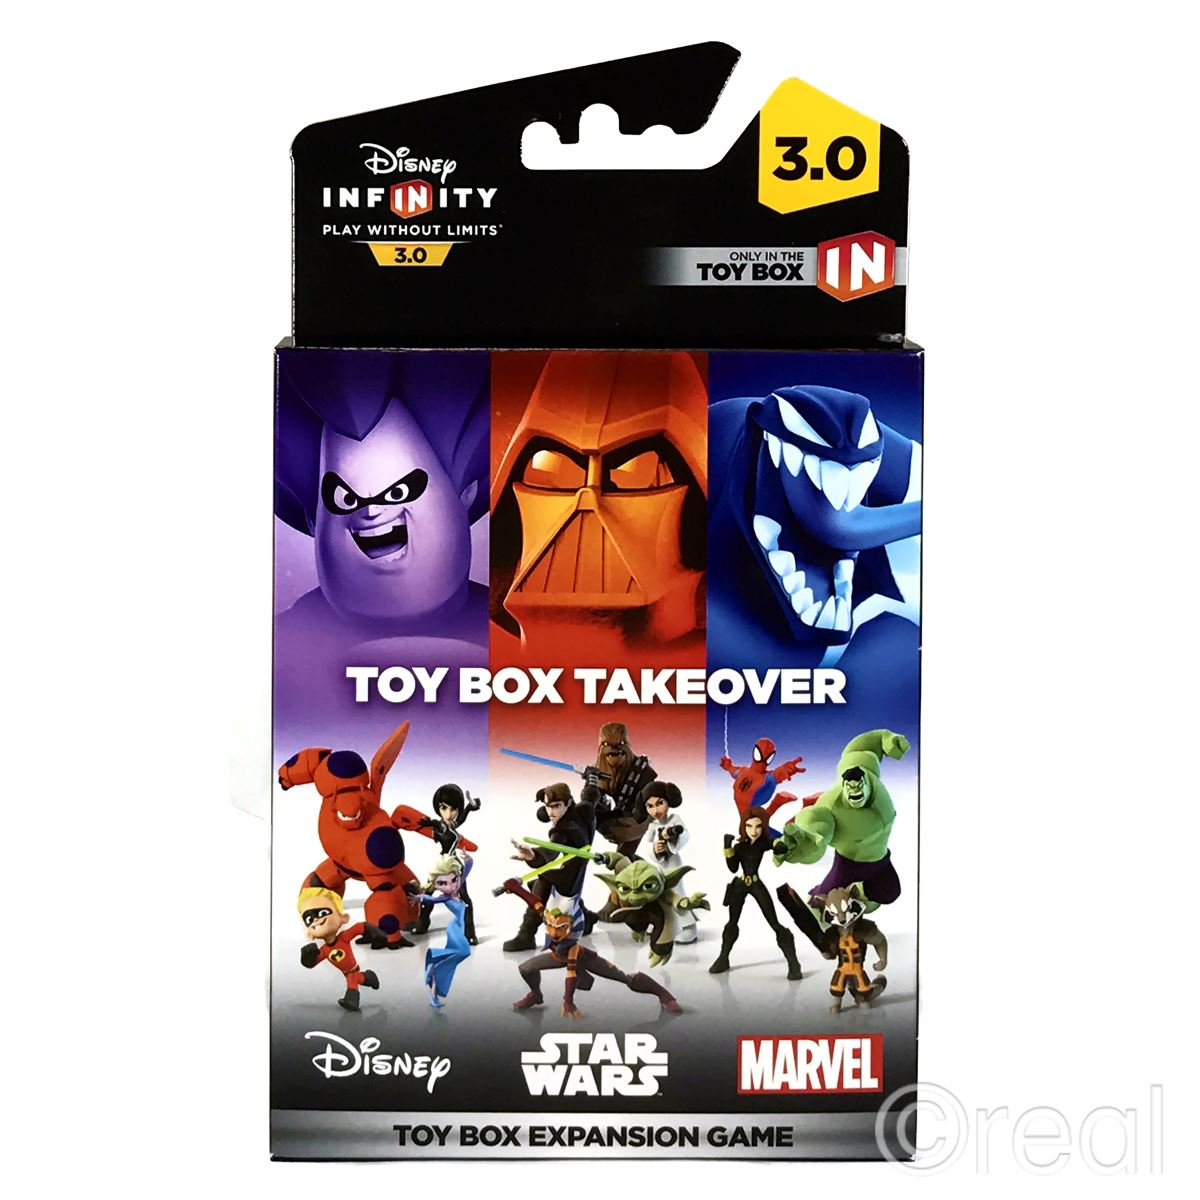 New-Disney-Infinity-3-0-Toy-Box-Takeover-Or-Speedway-Expansion-Game-Official